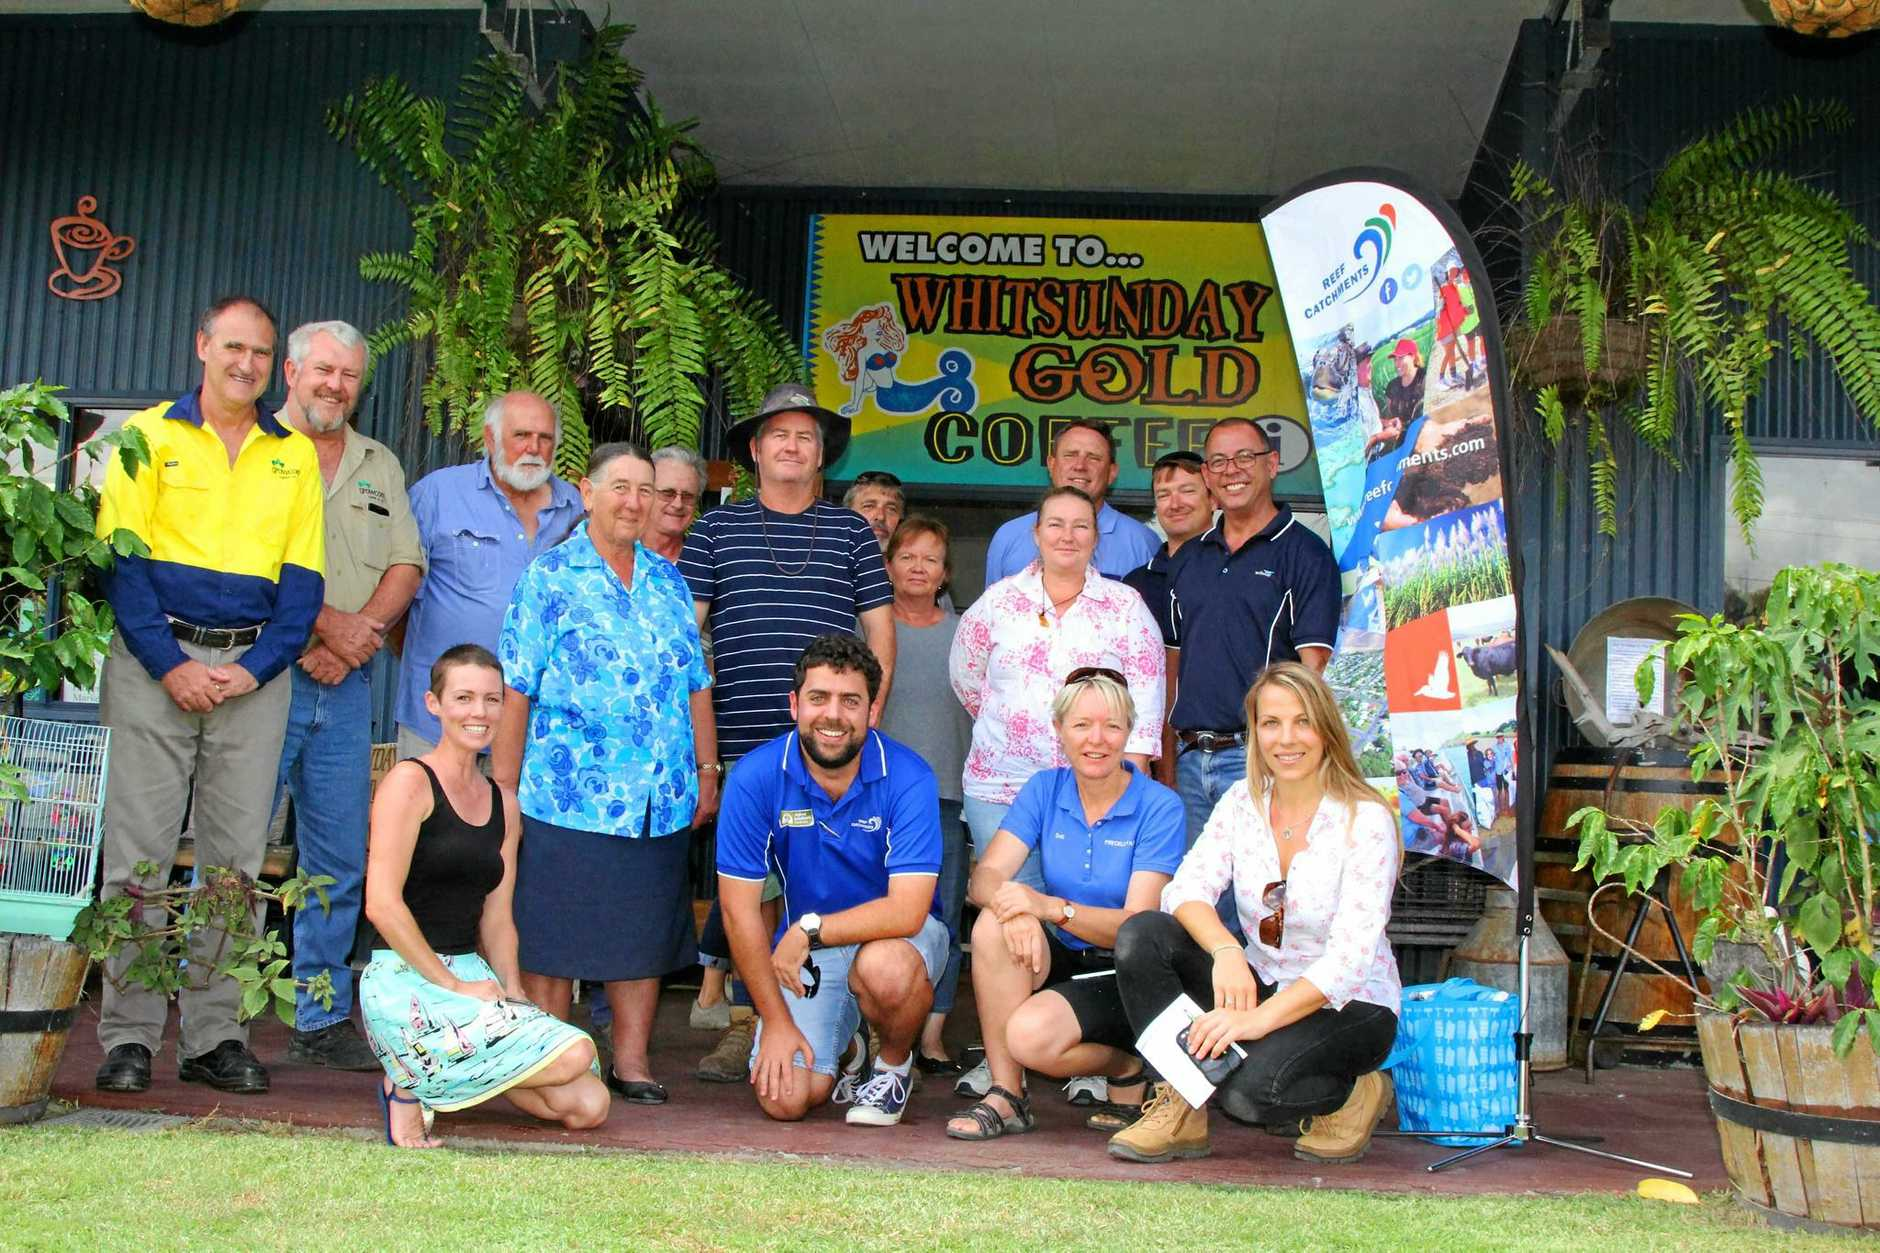 Julia Kasiske and Jacob Betros from Reef Catchments with Horticulture Field Day participants, Mary and Ken Ede, Steve Tiley, Mark Blair, Jock Hansen, Luke Hargreaves, Brooke and Kerry Qualischefski, Tegan McBride, Deb McLucas, Graham Simpson Damien Baxter and Noel Wright at Whitsunday Gold Coffee on Tuesday.